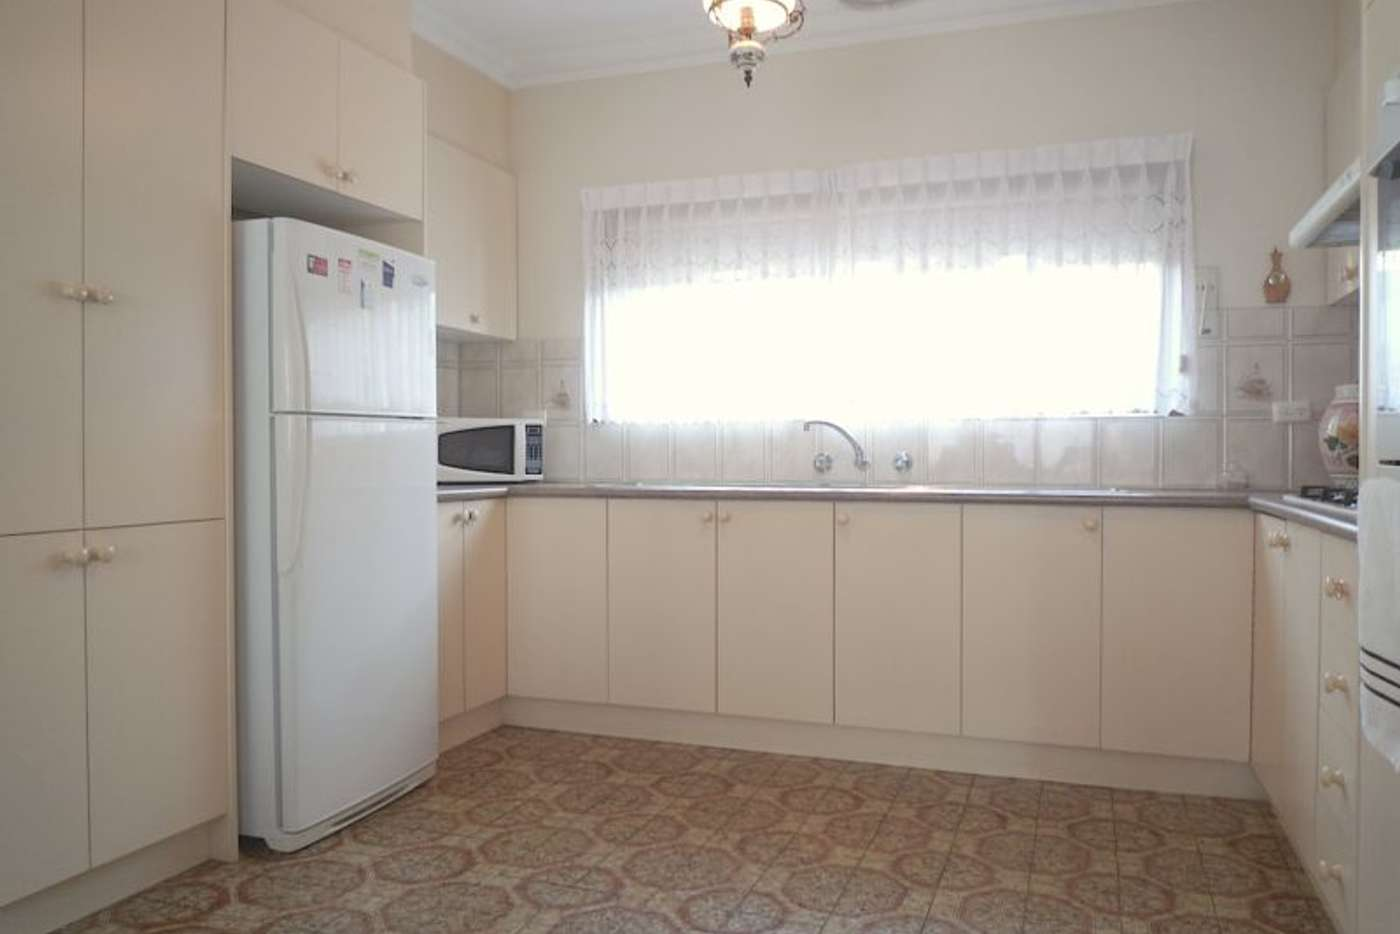 Sixth view of Homely house listing, 6 Woolacott Street, Coburg VIC 3058